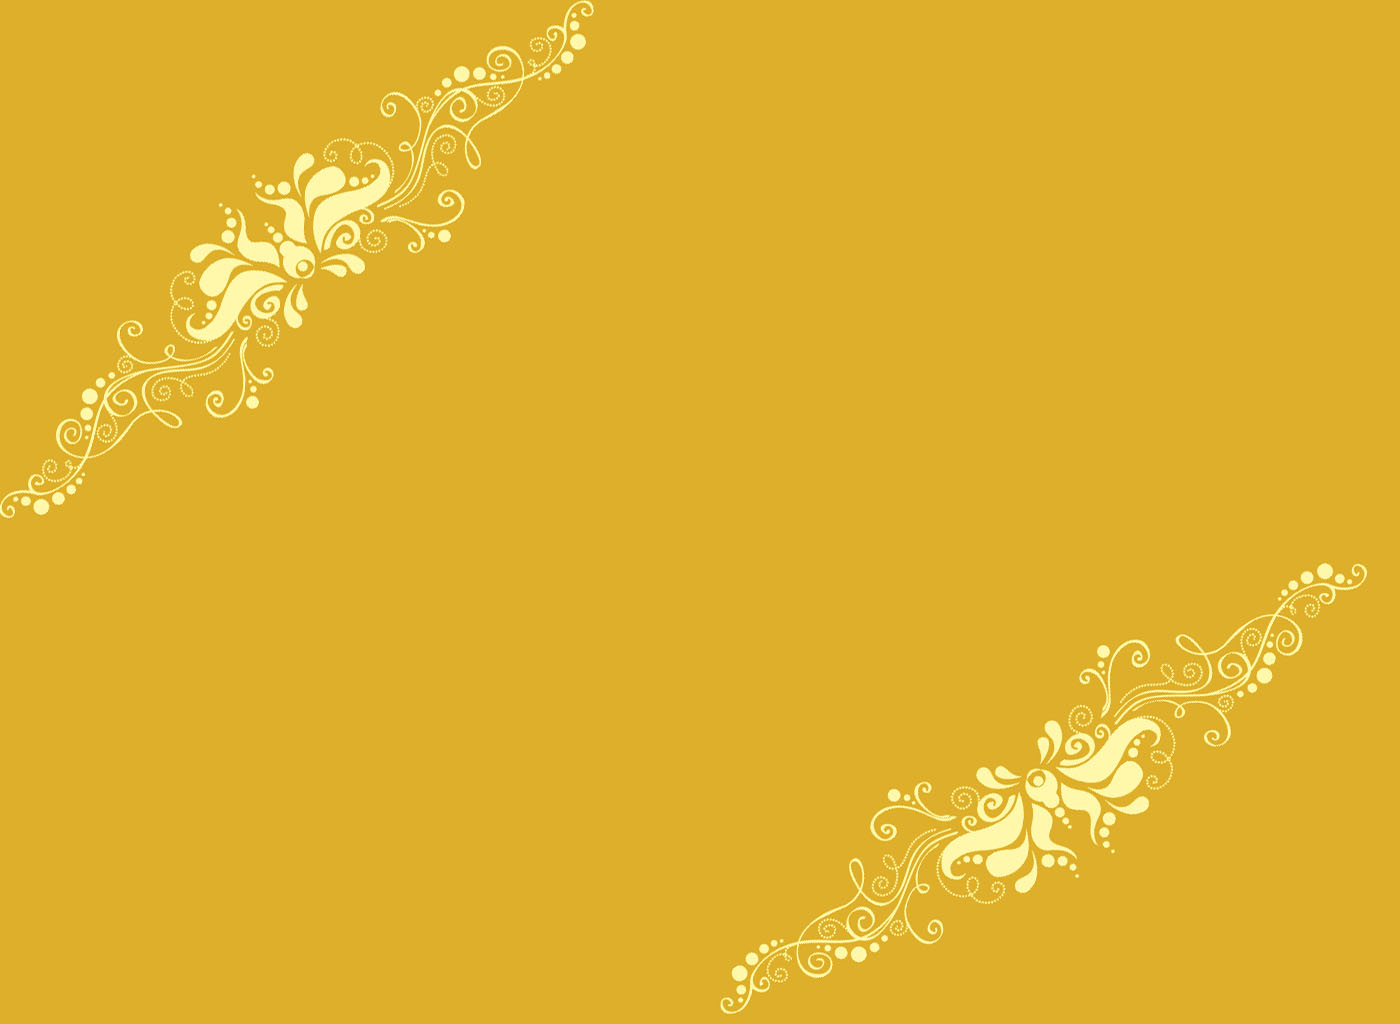 Yellow Ornaments PPT templates